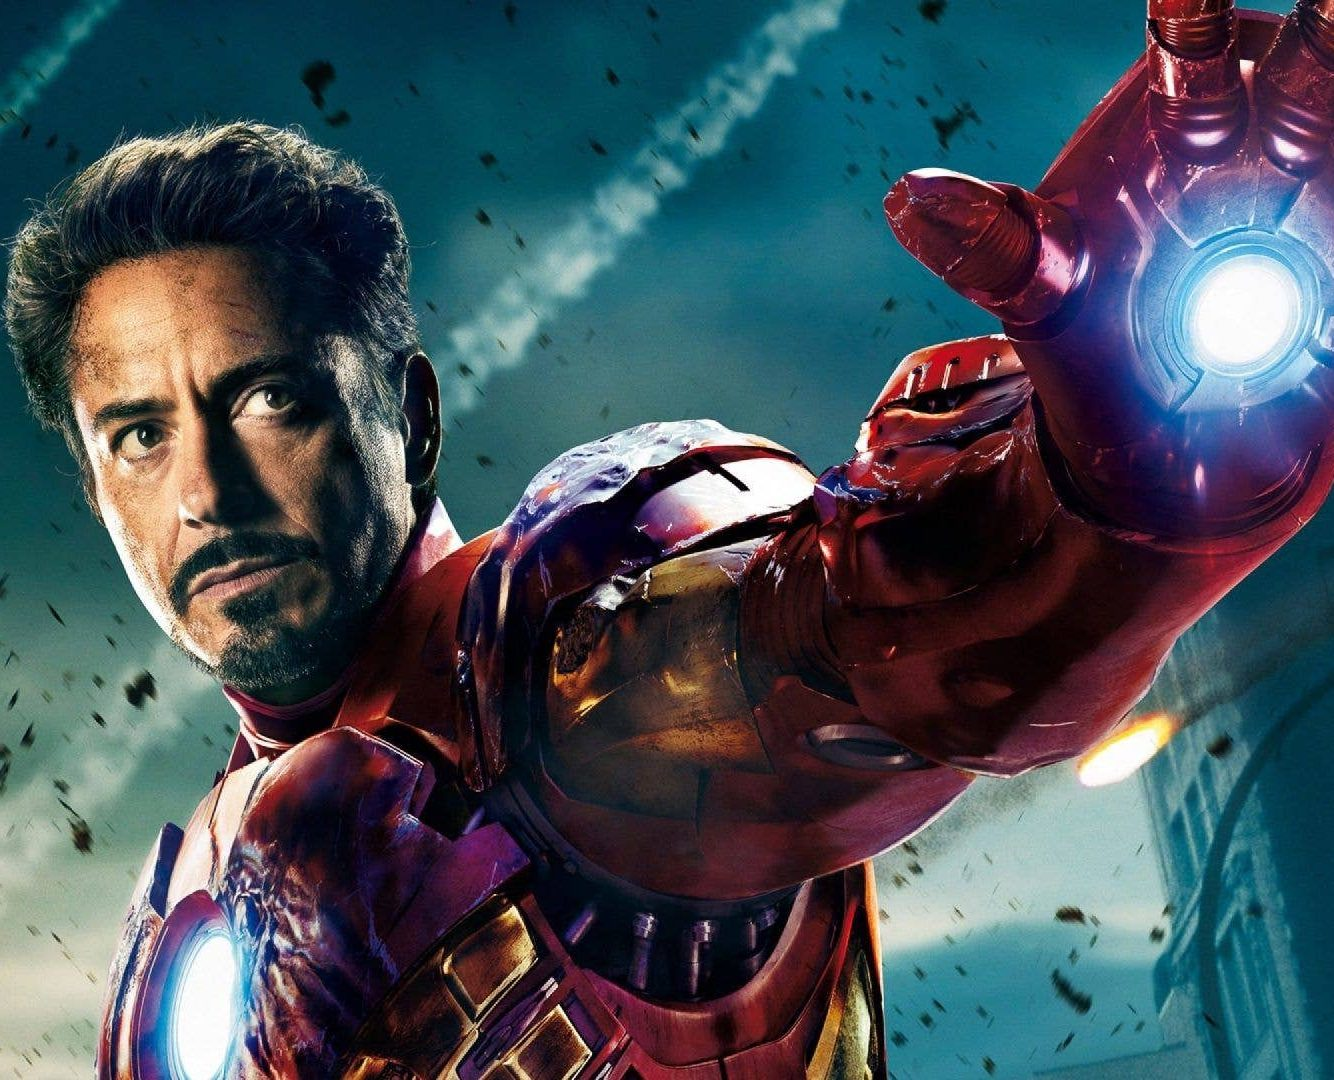 avengers tony stark iron man movie hd wallpaper 2880x1800 1920x1080 1 e1607343633970 19 Things You Might Not Have Realised About Wesley Snipes